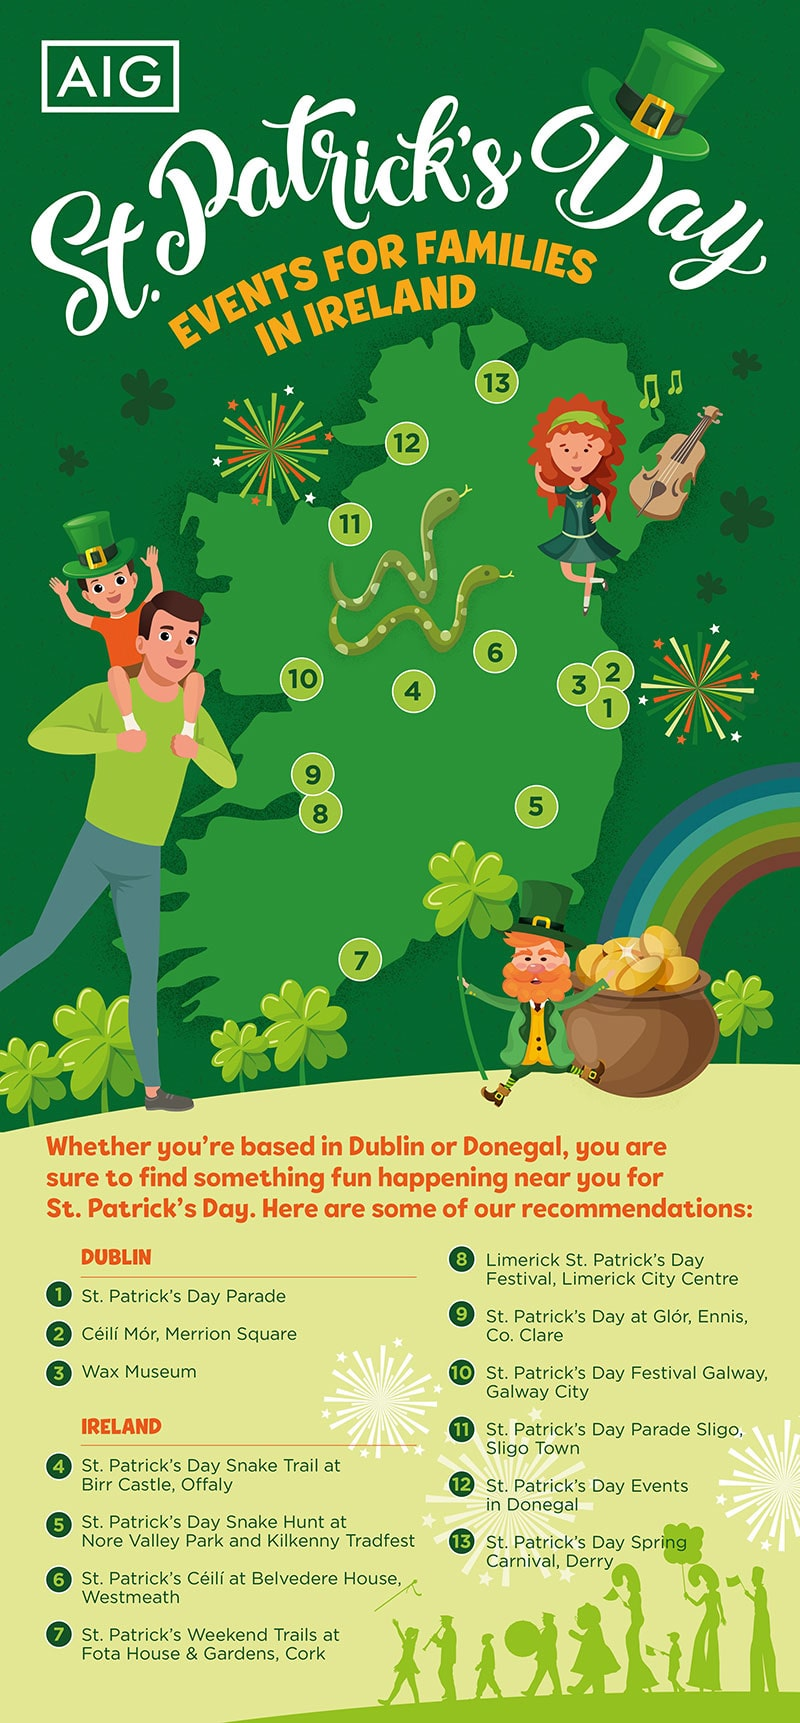 St. Patrick's Day Events for Families in Ireland